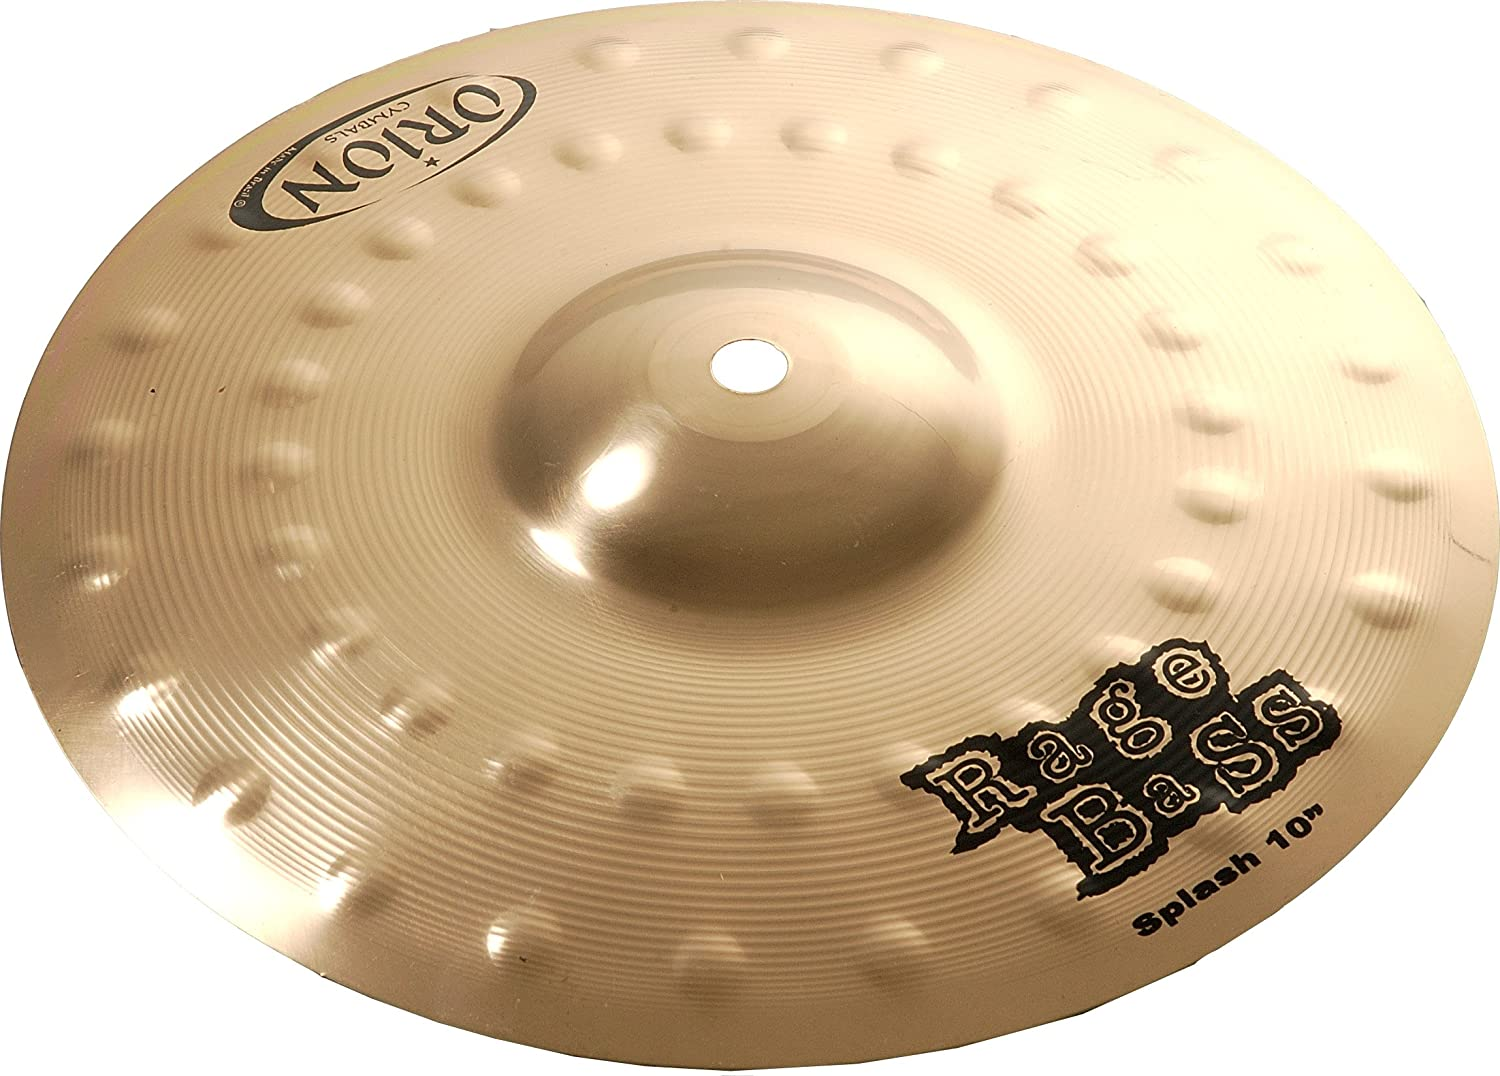 Orion Cymbals Rage Bass Series Cymbale Splash 10 RB10SP Cymbales/Cymbales Splashs